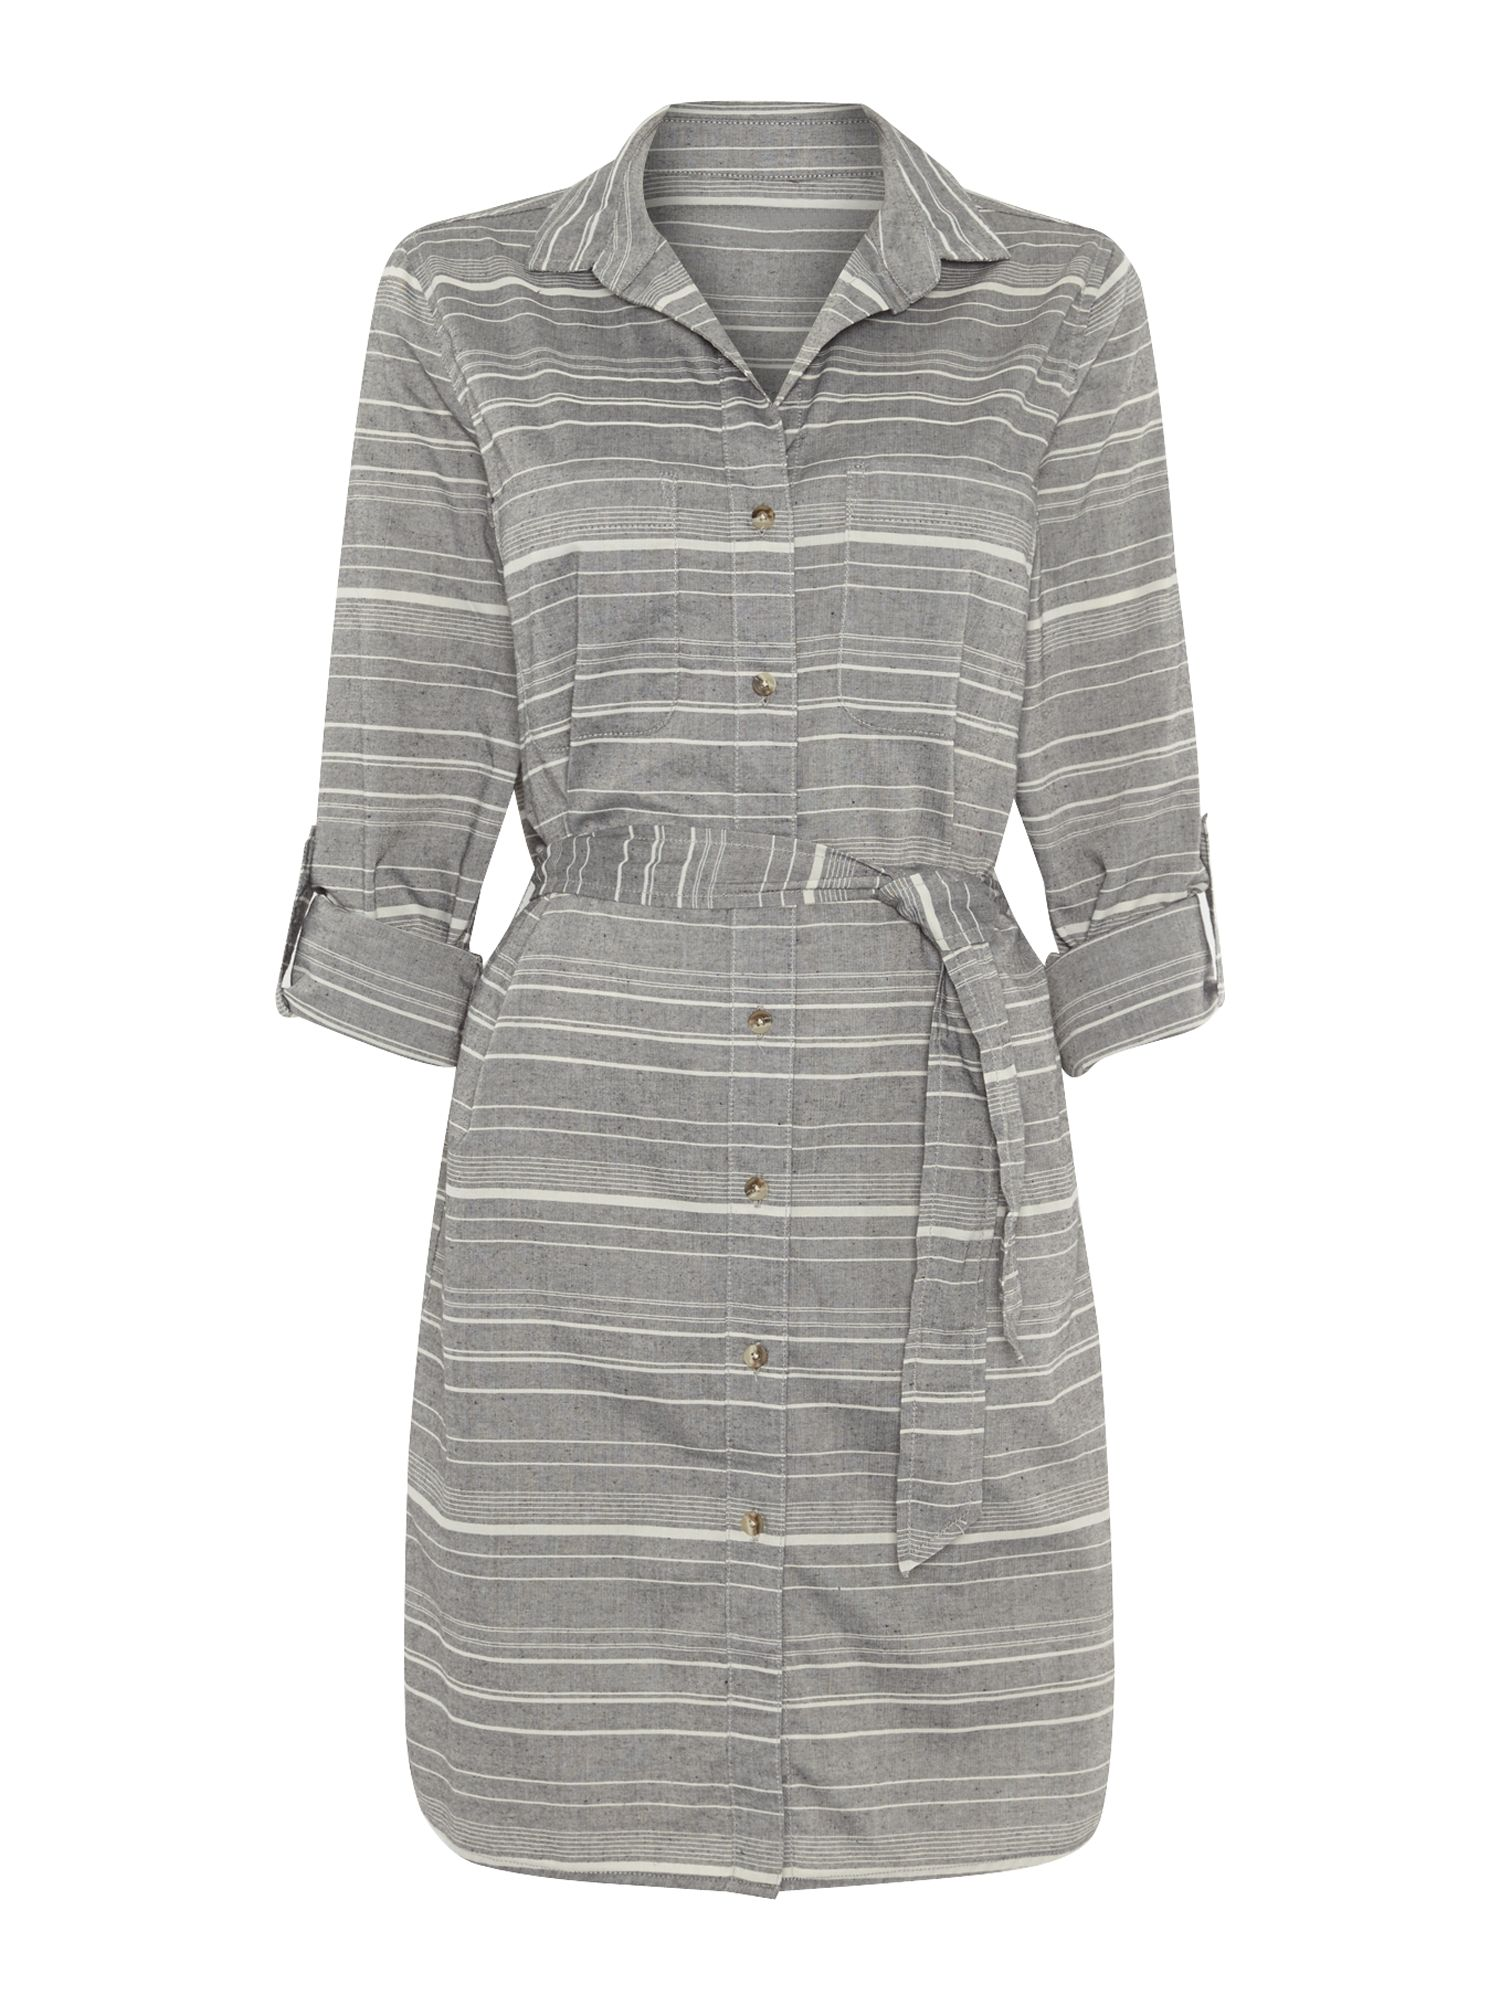 Stripe chambray shirt dress